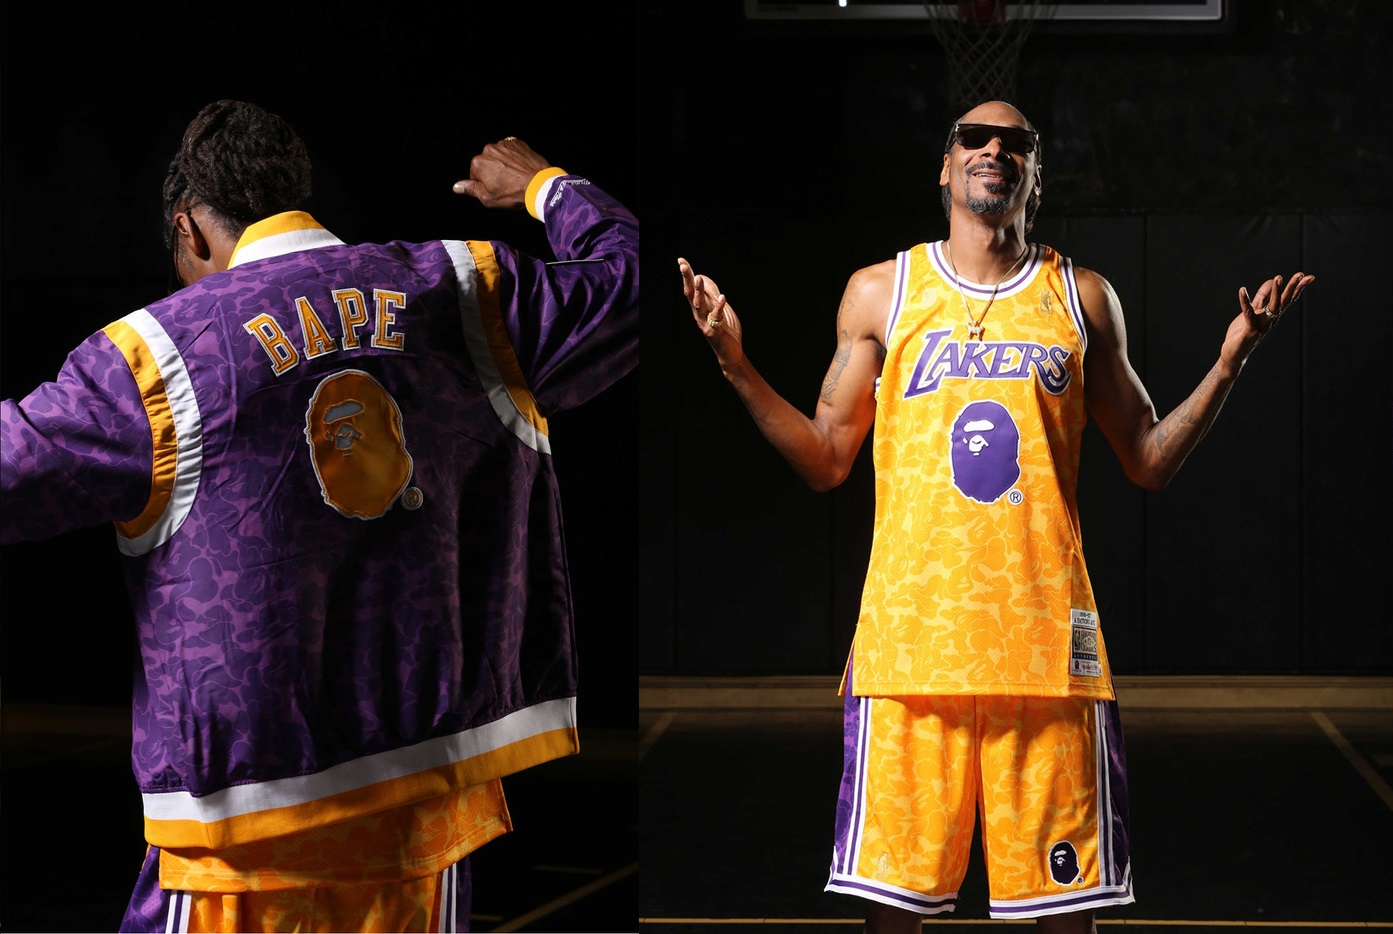 4dfd053a762 BAPE Linked up with Mitchell & Ness and Spalding for NBA-Focused Collection